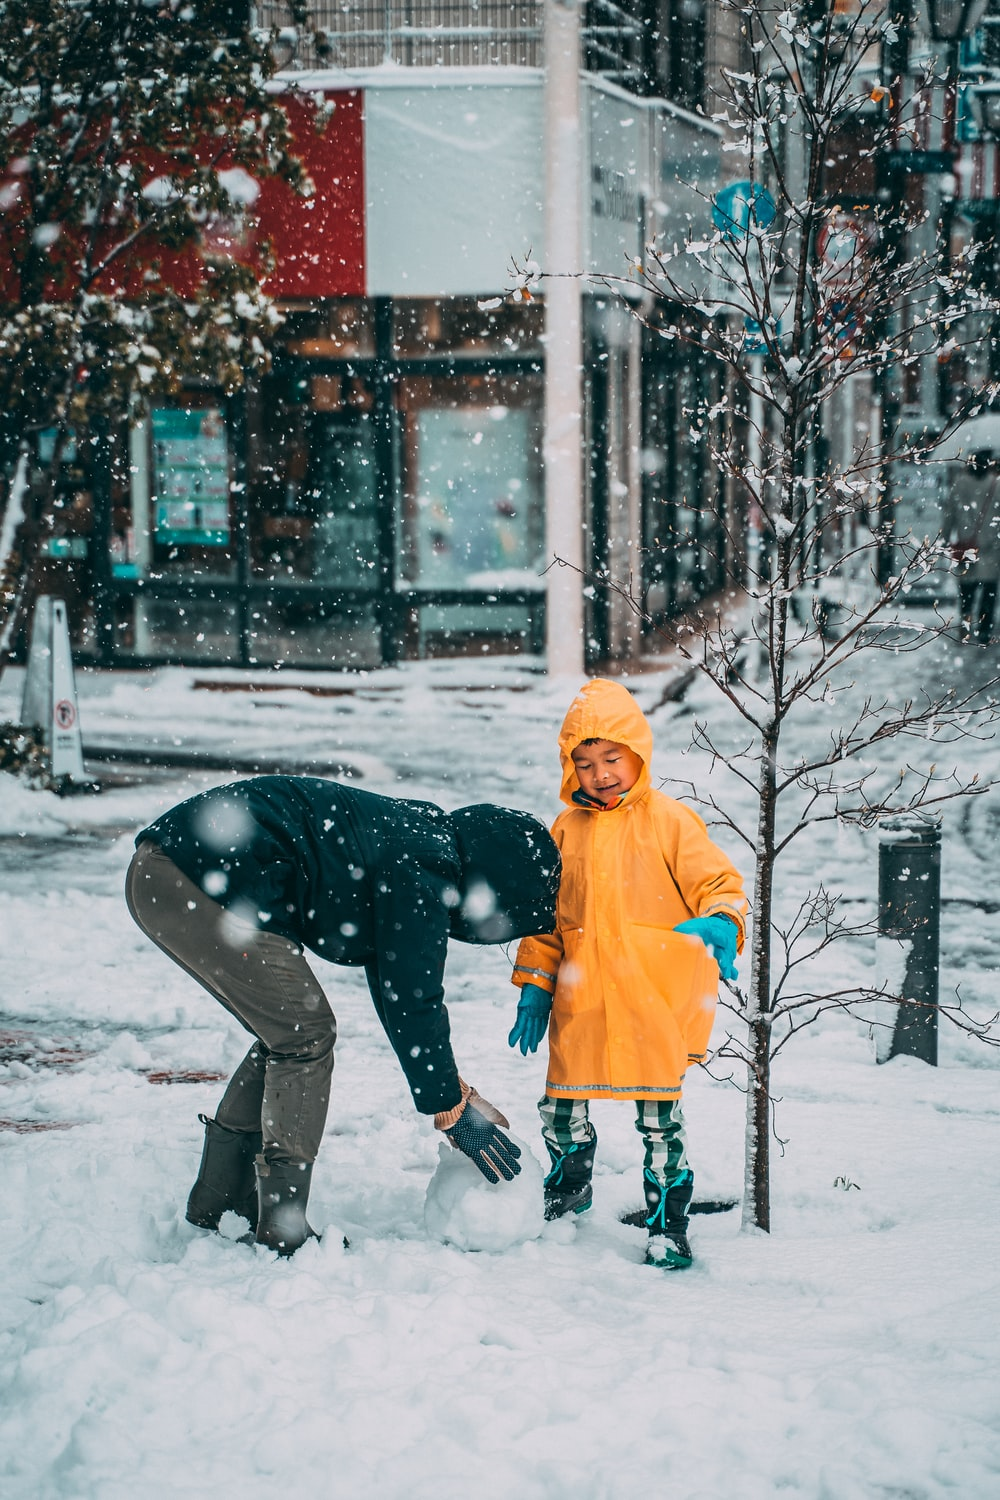 child in yellow jacket and black pants playing on snow covered ground during daytime